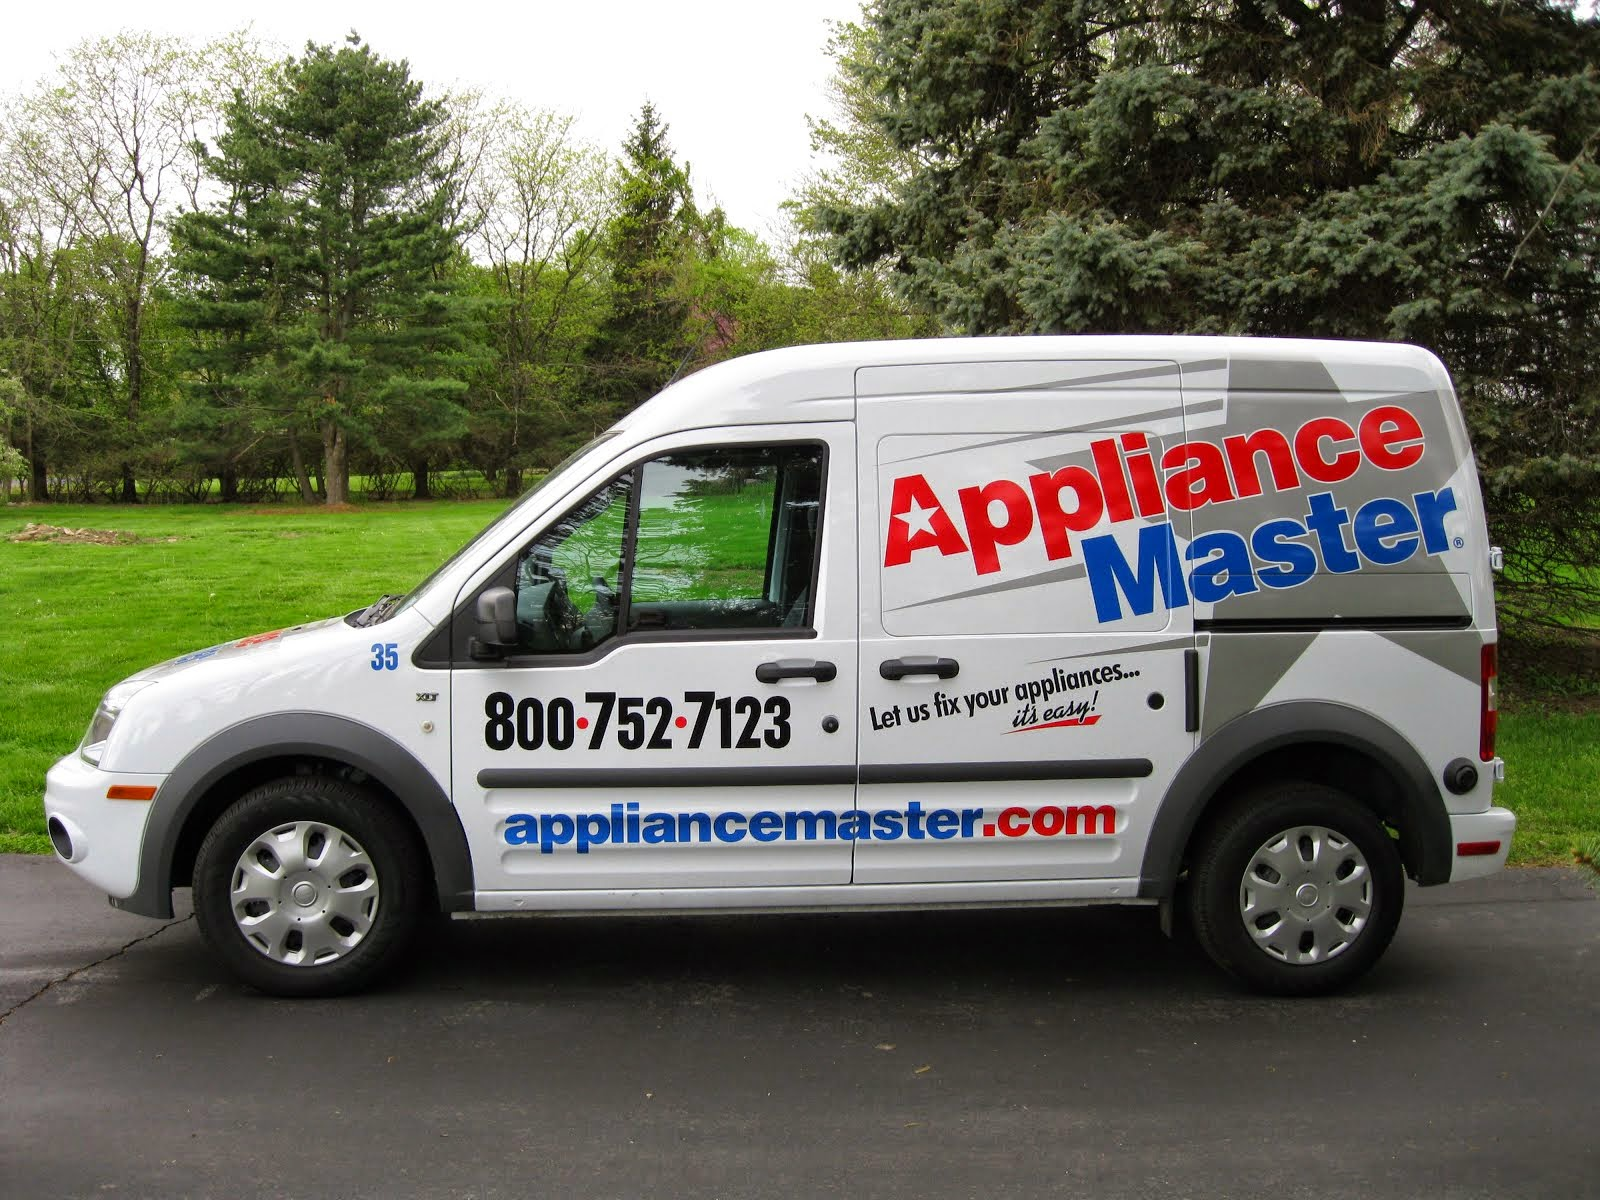 Princeton Appliance Repair 609-683-7171